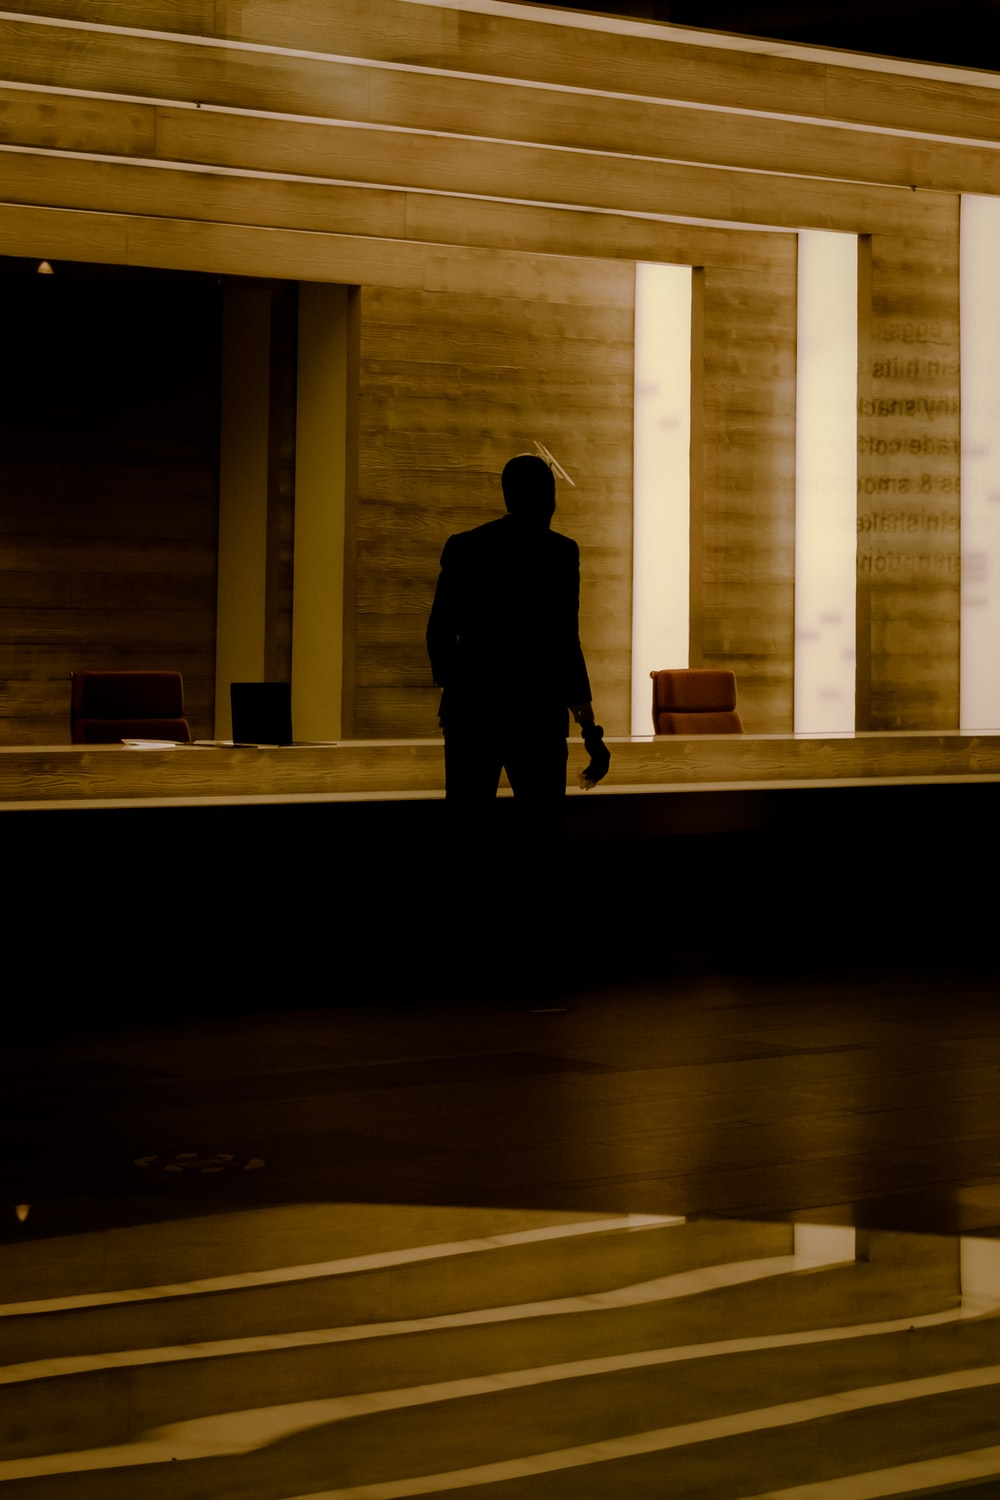 silhouette of person standing on hallway